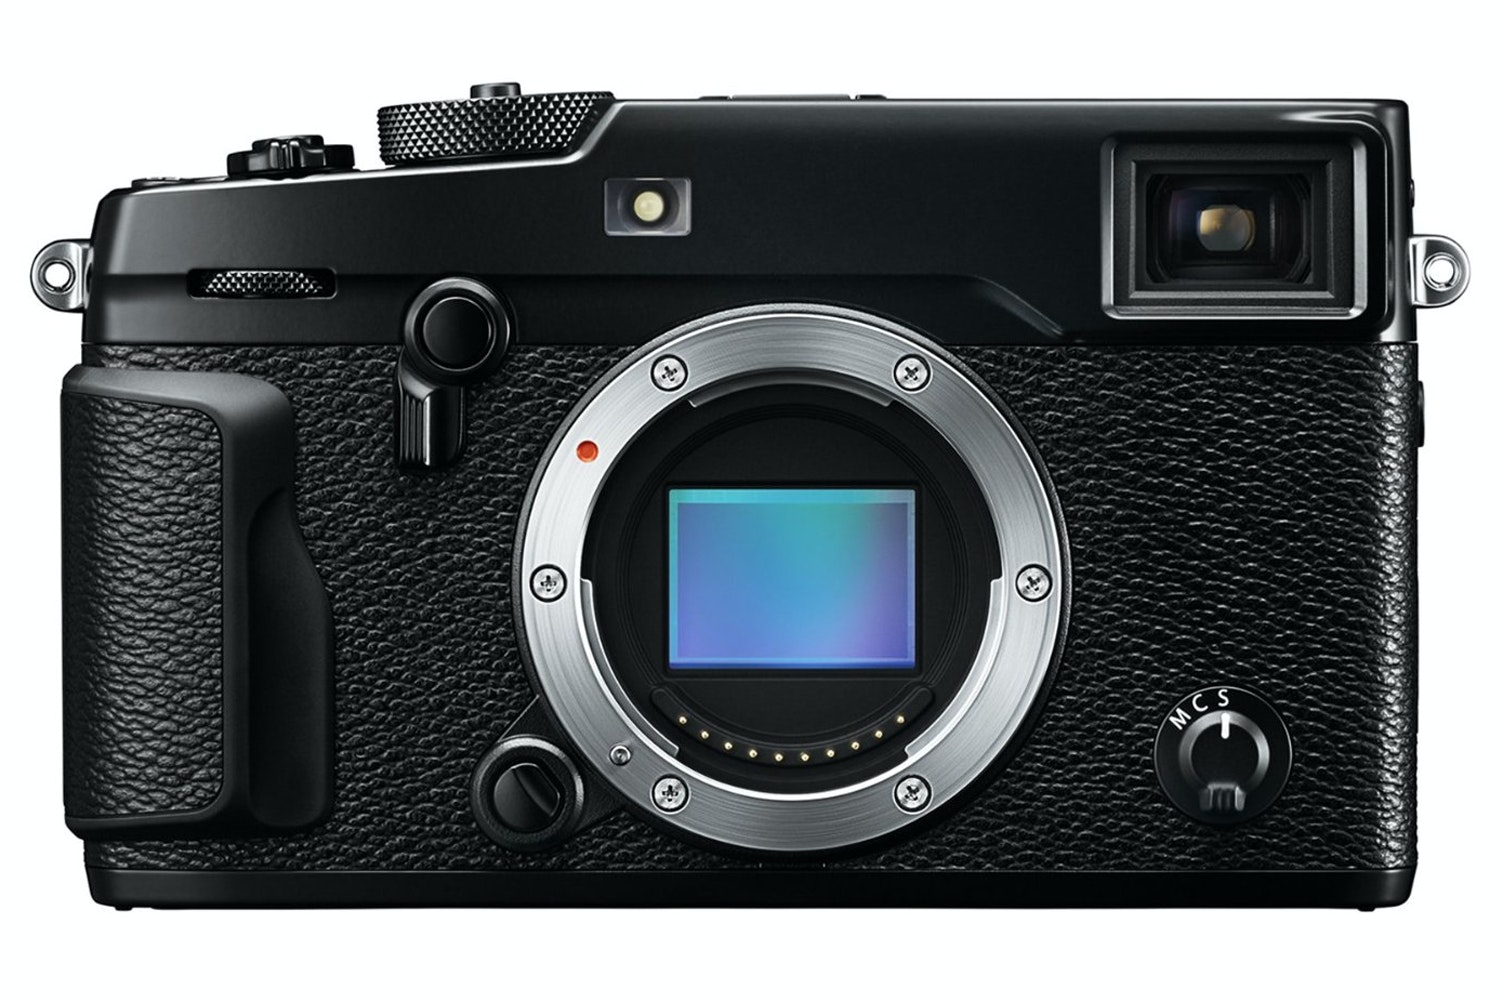 Fujifilm X-Pro2 Mirrorless Camera | Body Only